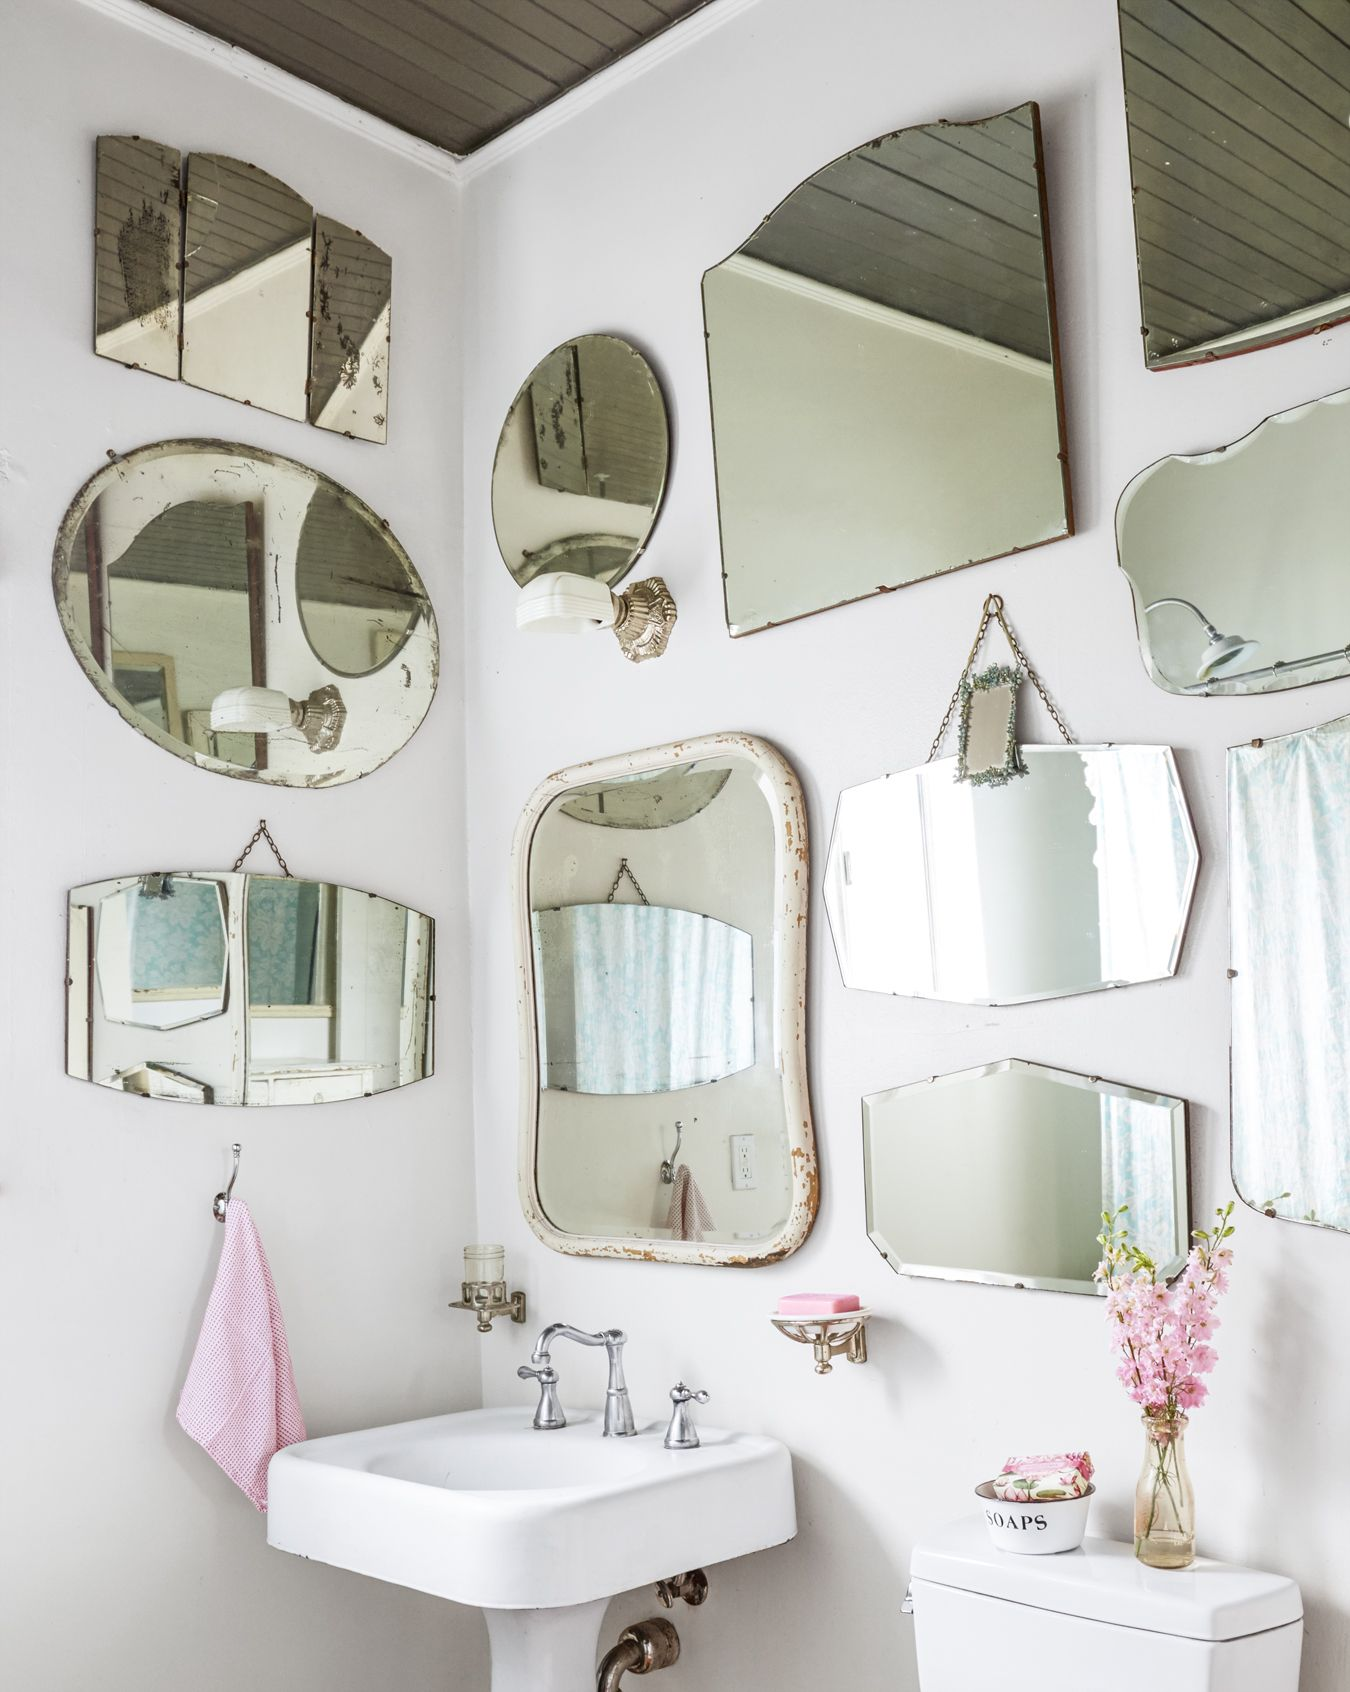 Share A Single Bathroom Jack And Jill That Sits Between The Children S Rooms Collection Of Vintage Mirrors Makes Ear Larger